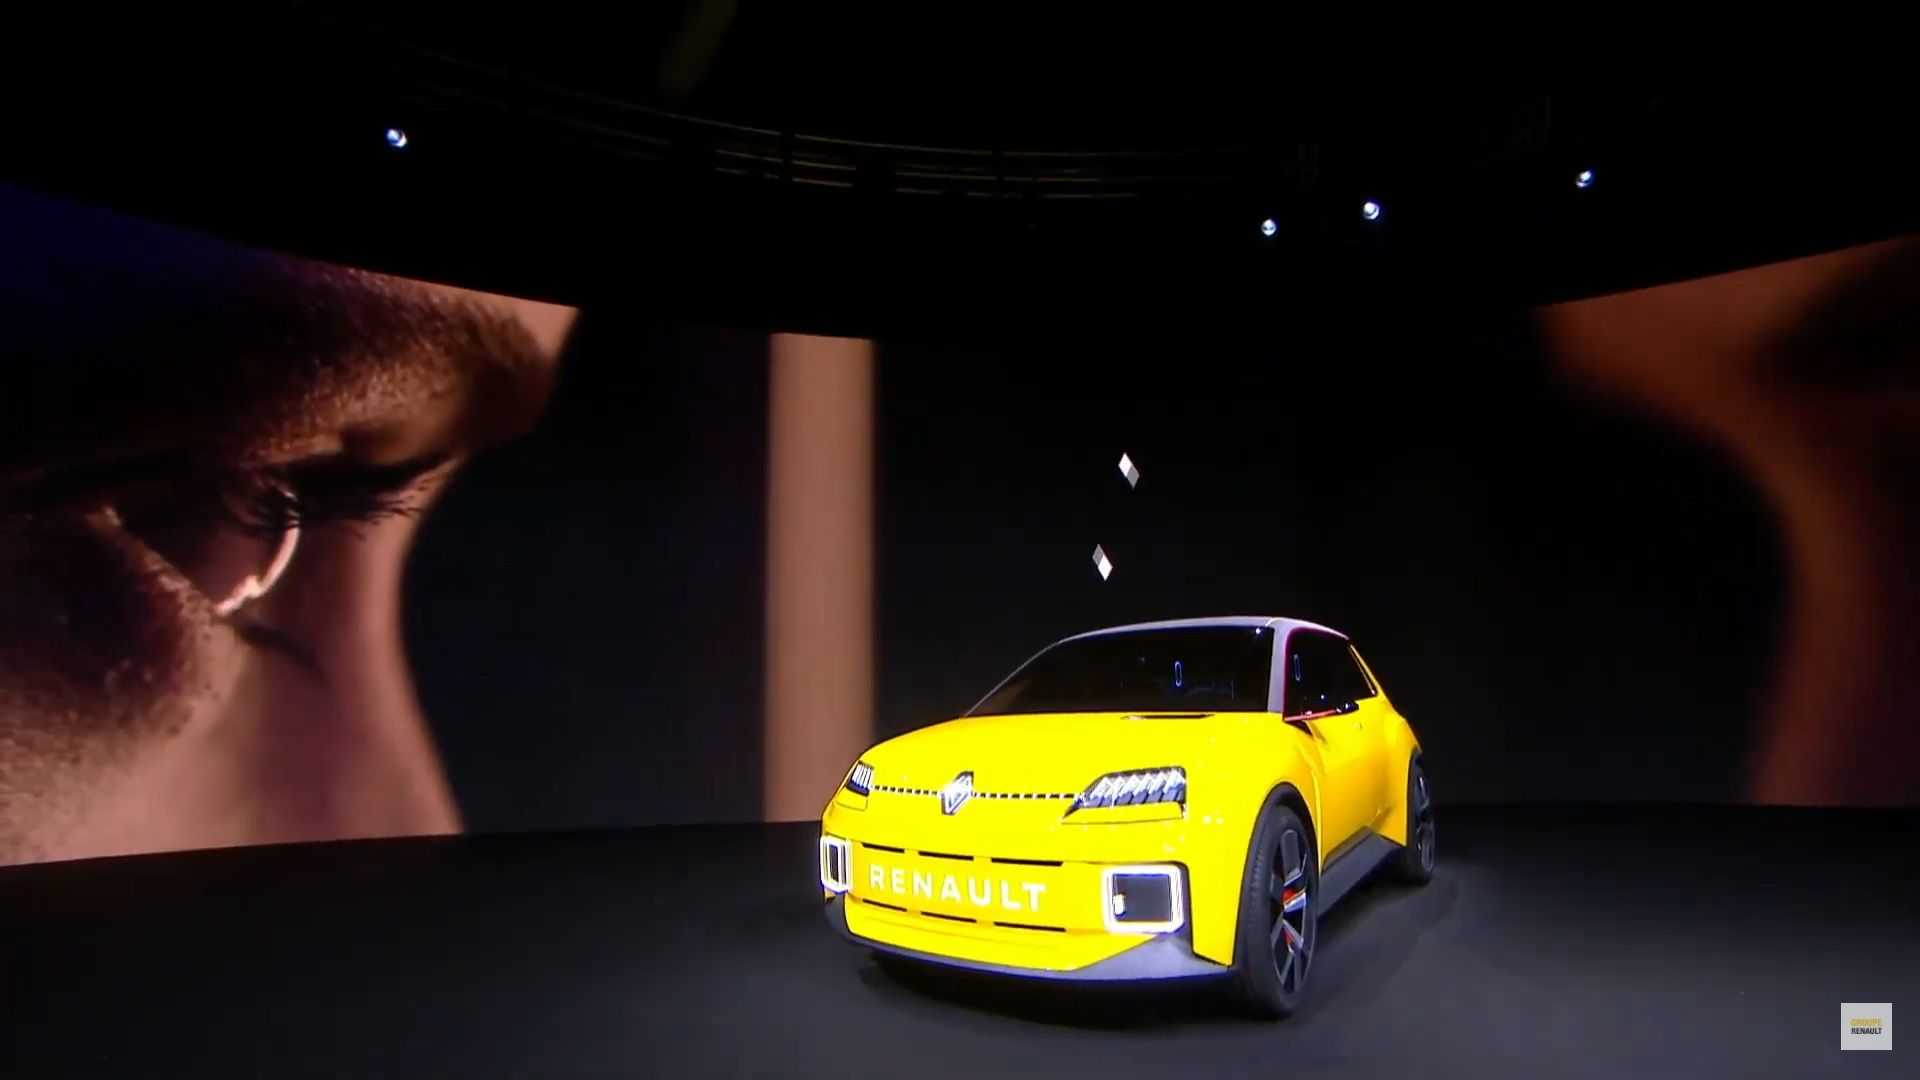 Renault 5 Electric Supermini Previewed With Retro Modern Styling